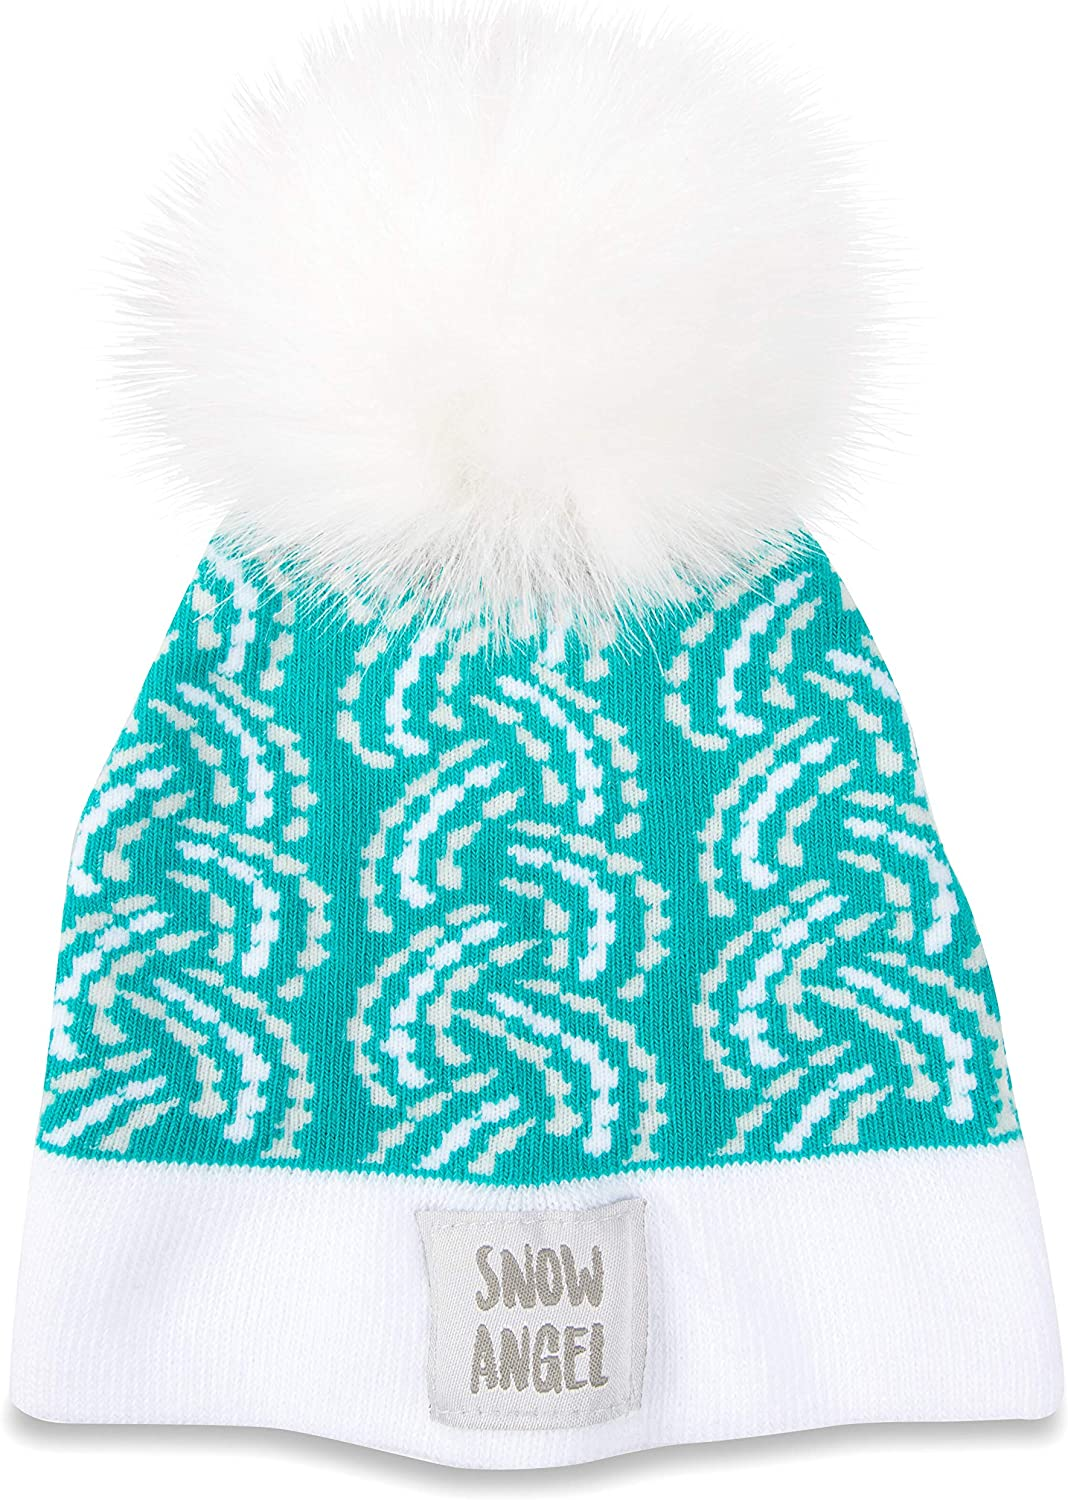 Pavilion Gift Company Snow Angel-Teal Knit Pom Hat (12-24 Months), Blue, One Size